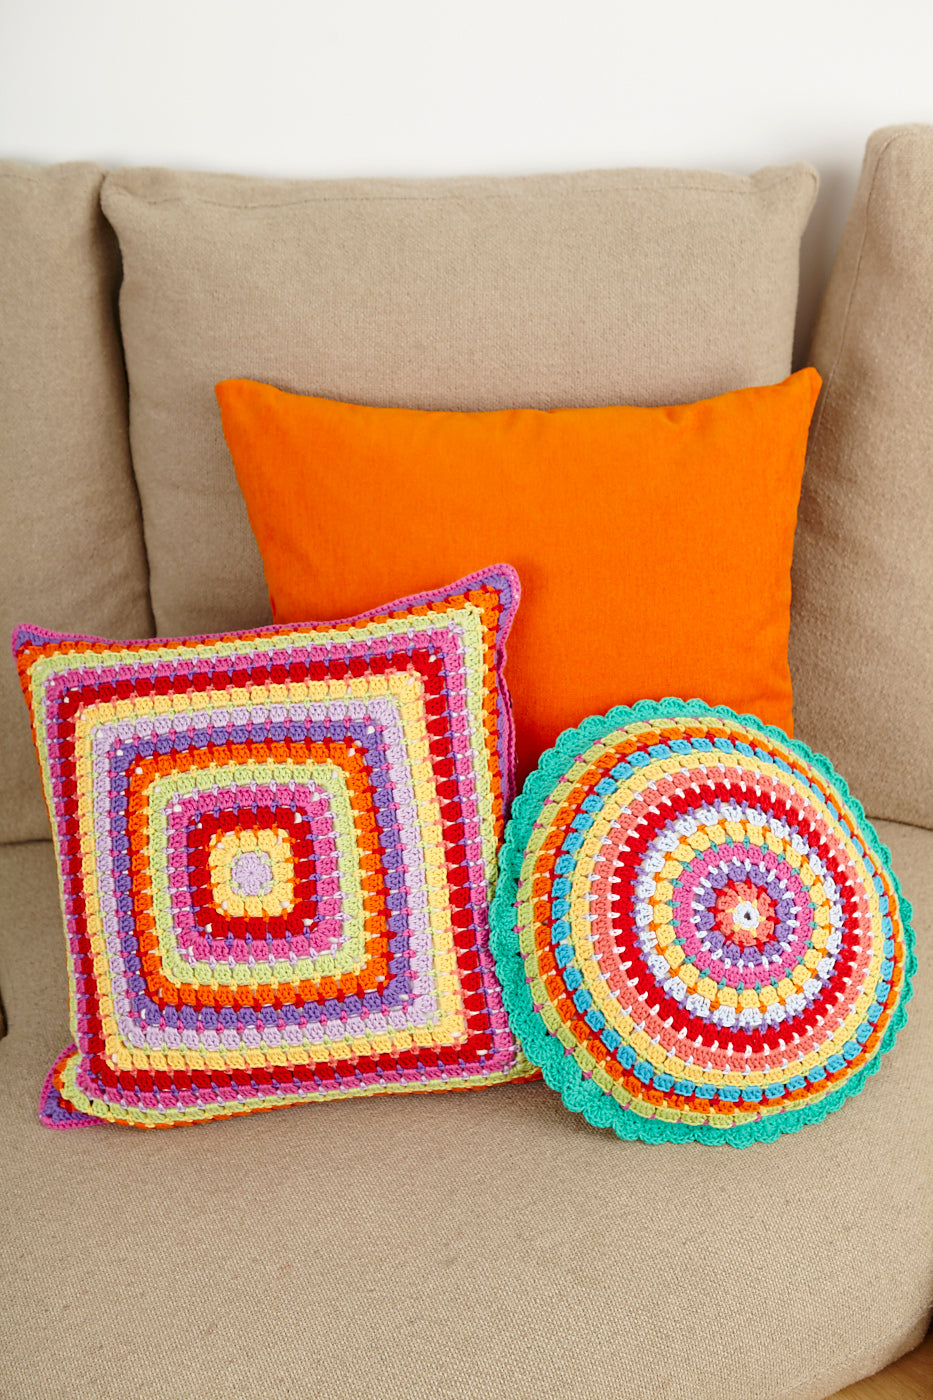 Stylecraft Classique Cotton DK  Pattern 8851 - Crochet Cushions